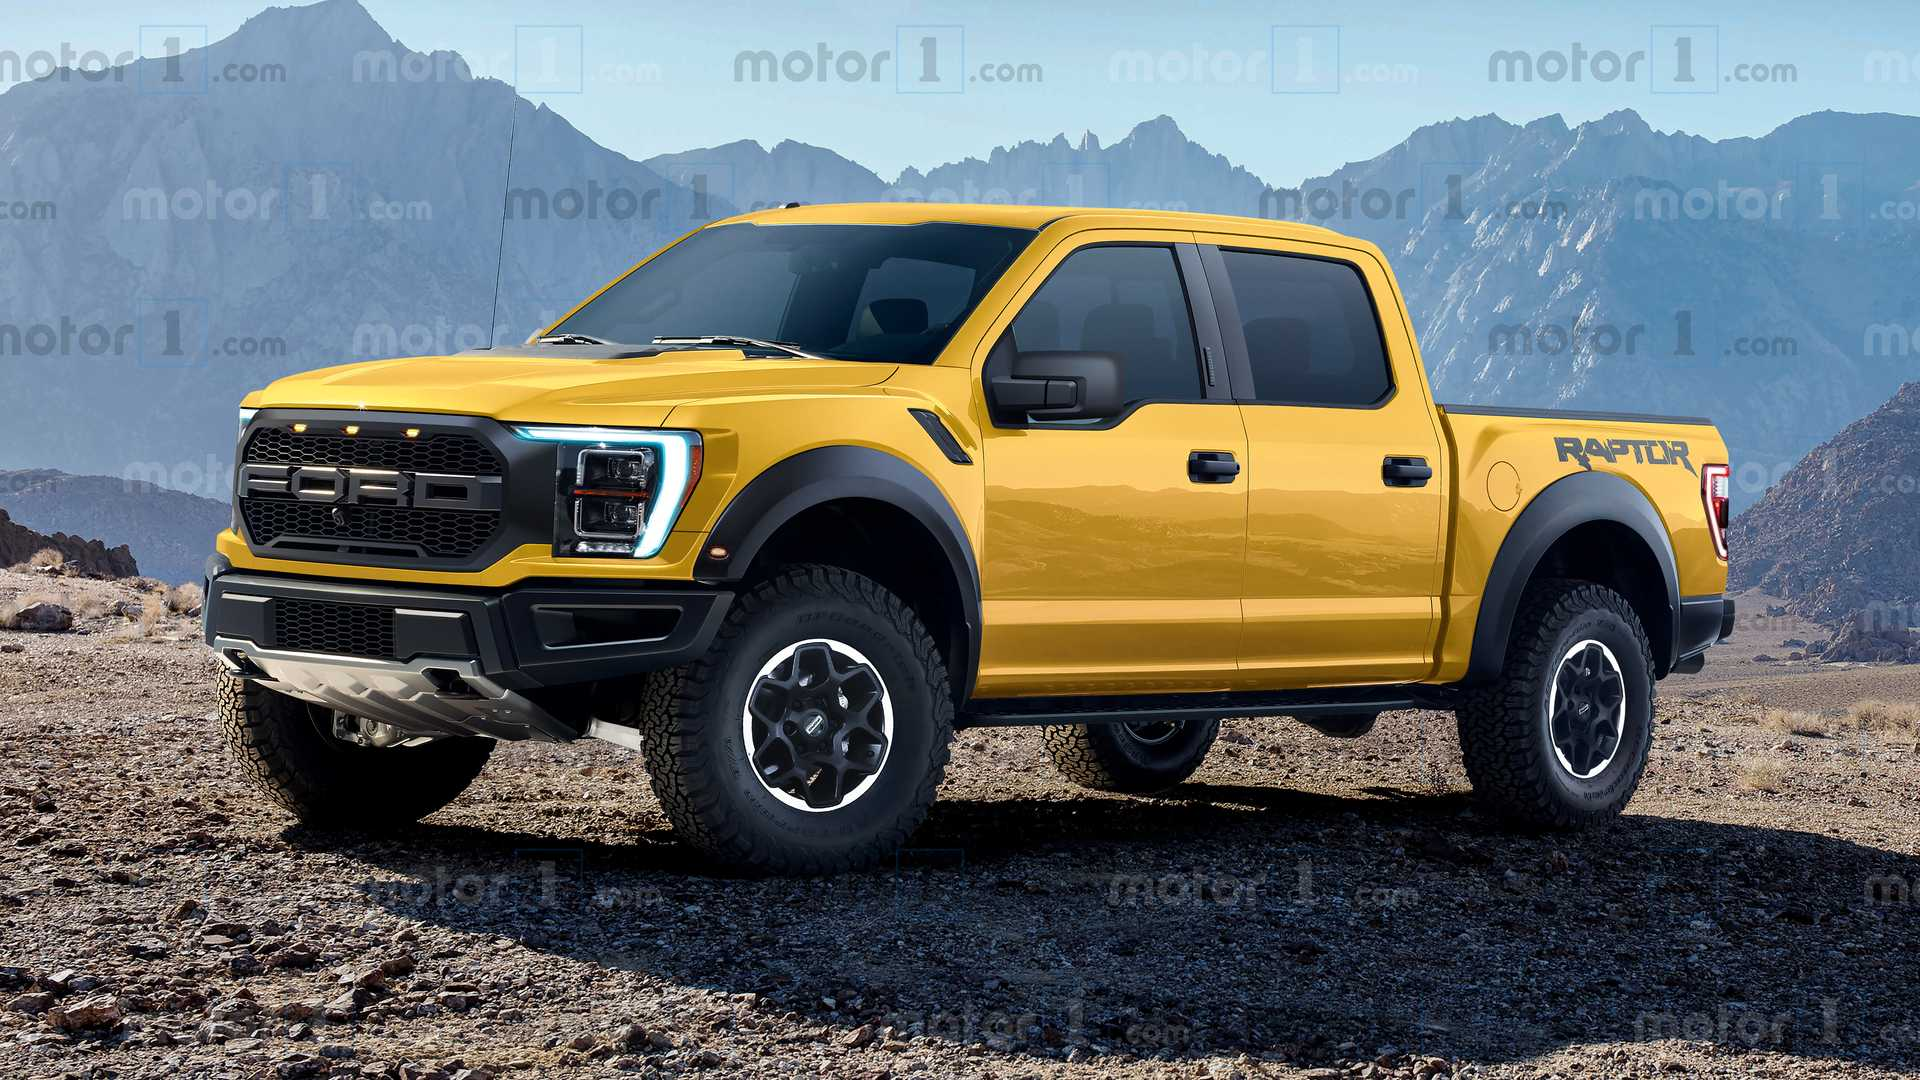 2021 Ford Raptor Performance and New Engine